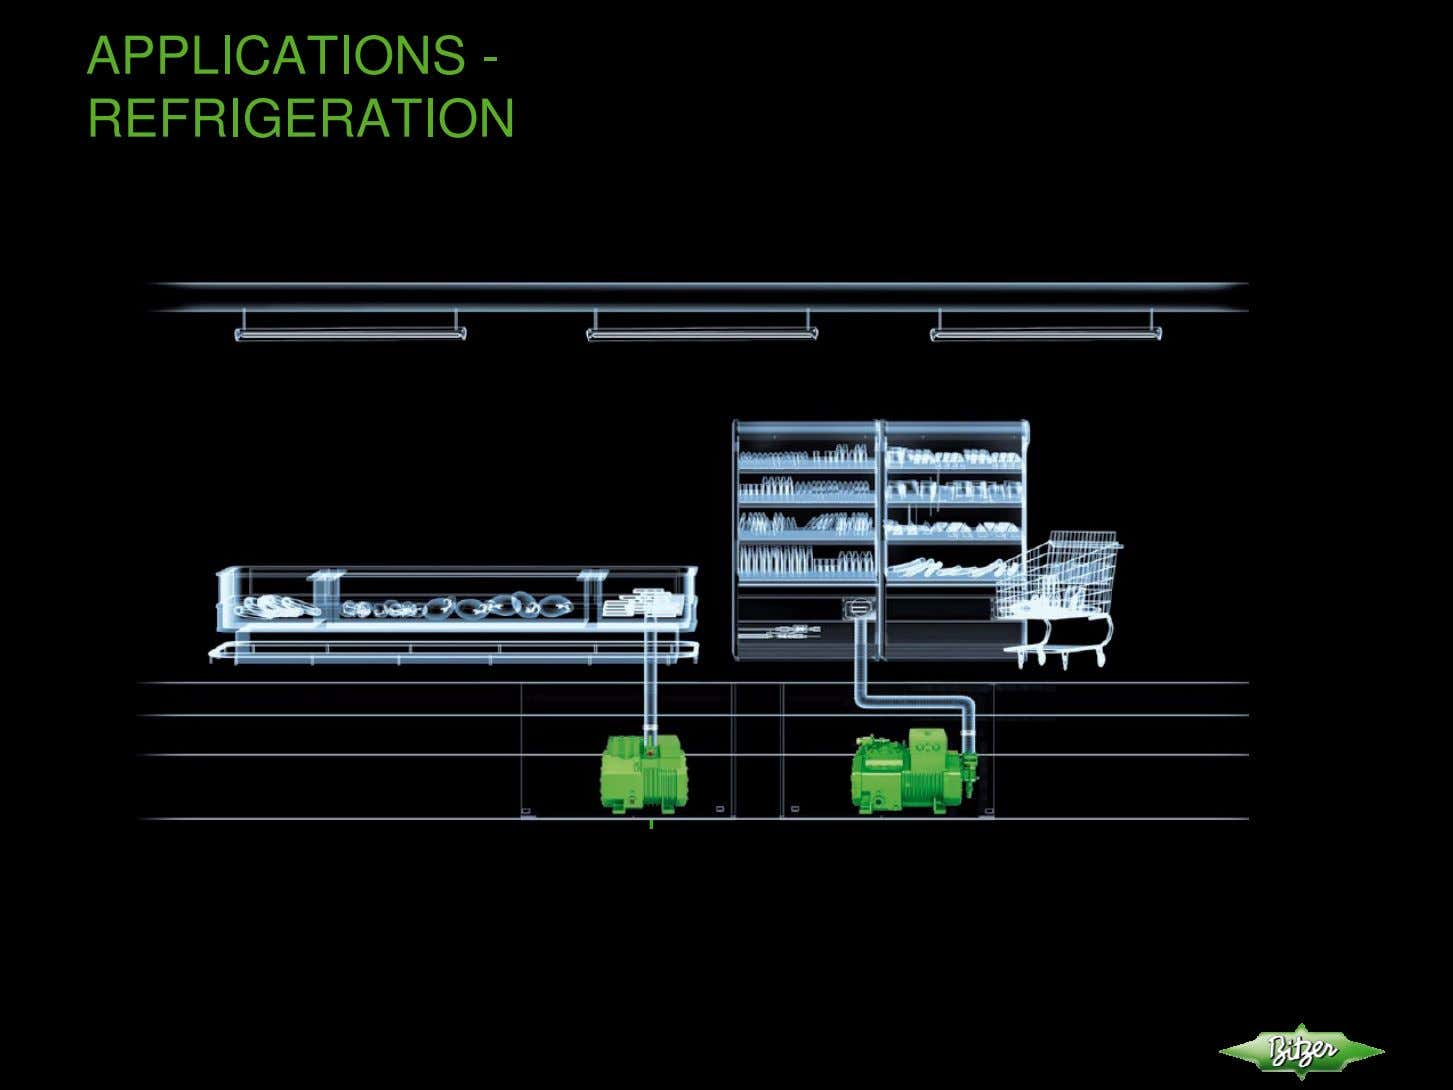 APPLICATIONS - REFRIGERATION BITZER // Application with Reciprocating and Screw Compressors operated on R407F